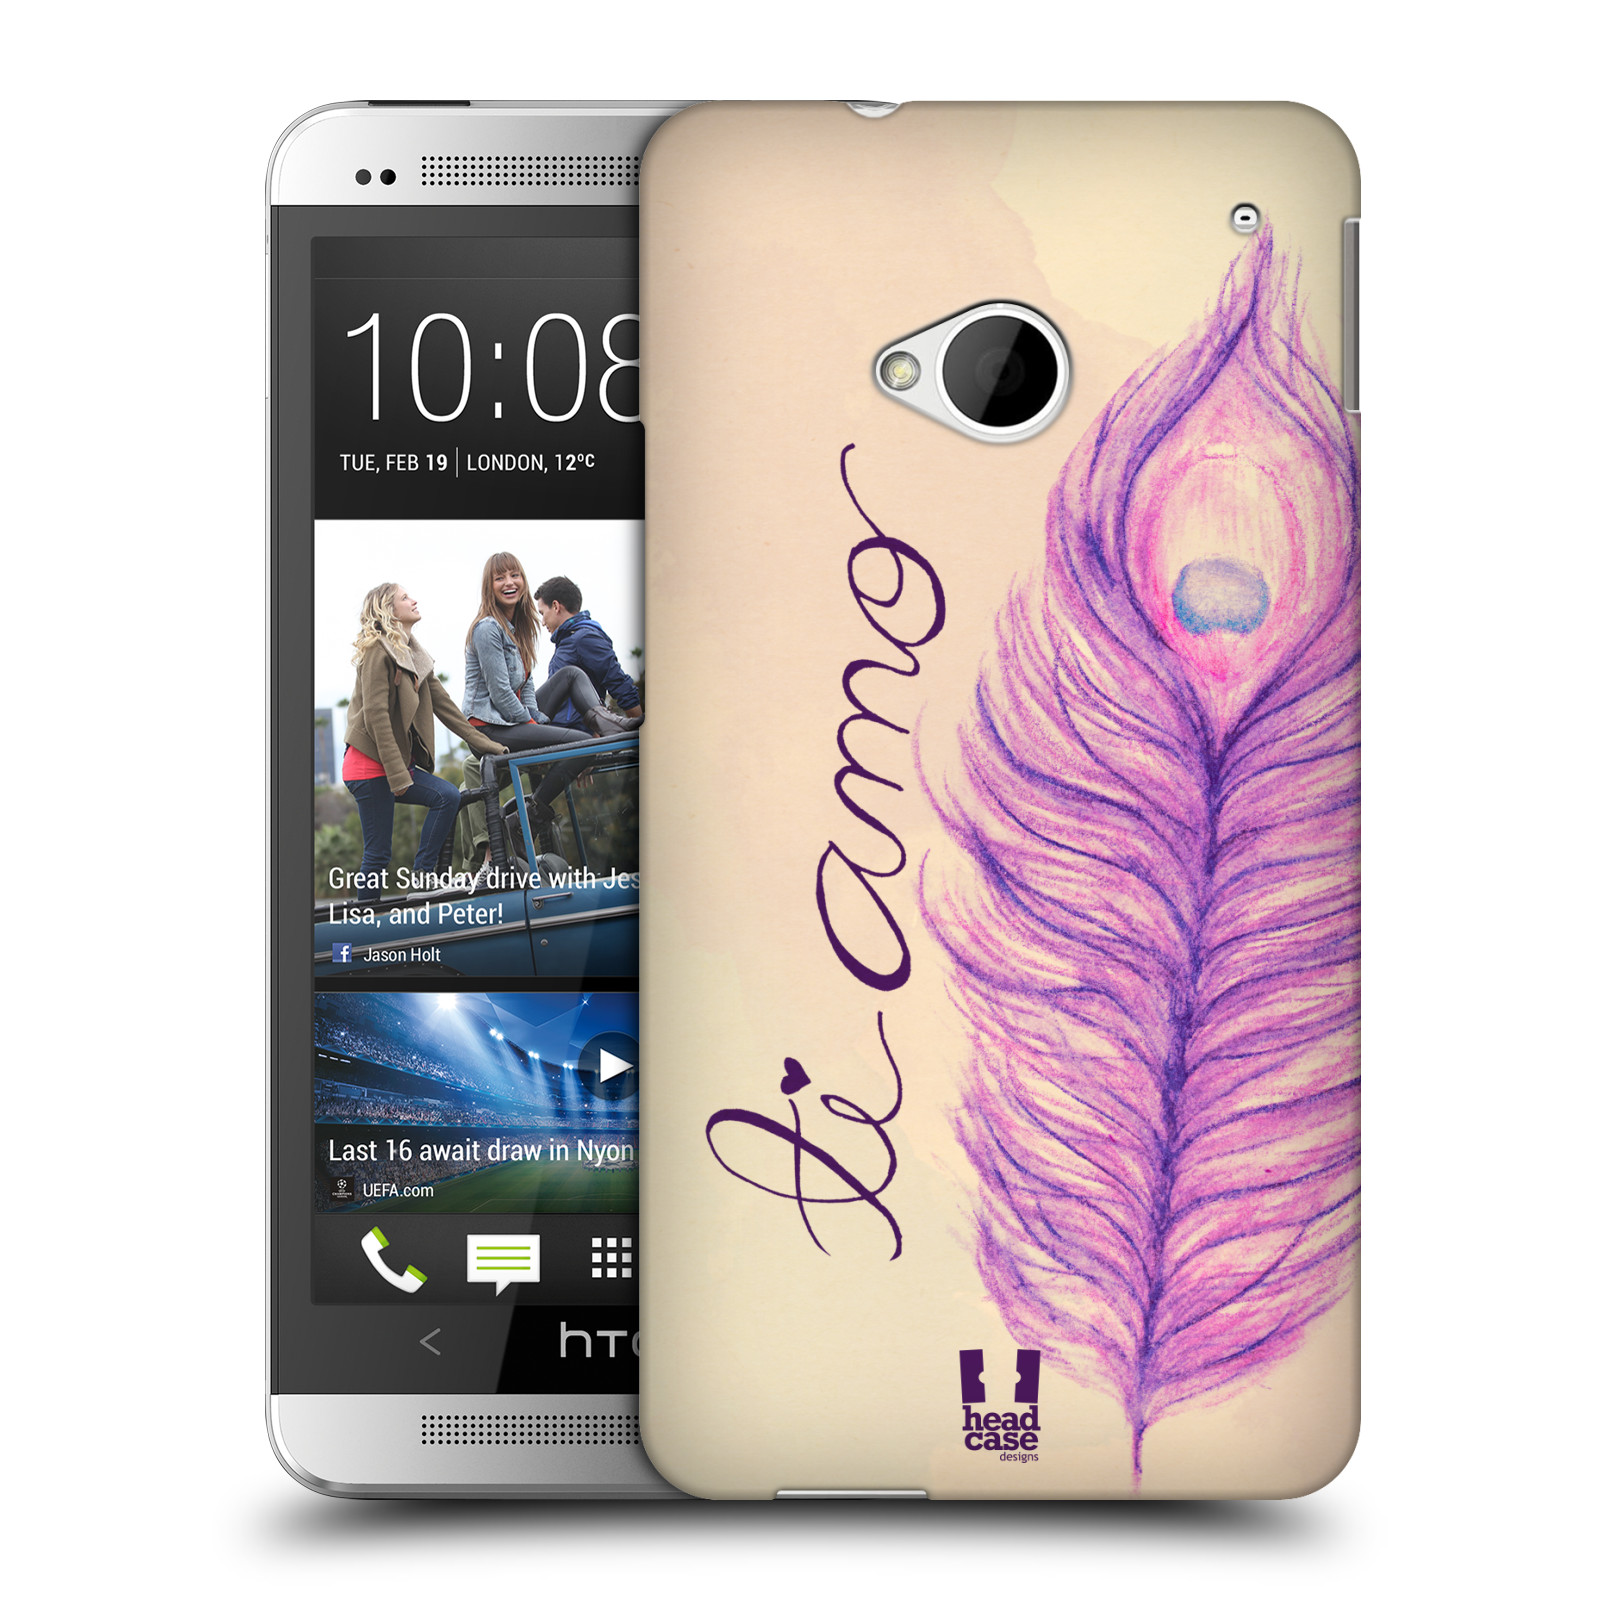 HEAD CASE DESIGNS PEACOCK FEATHERS CASE COVER FOR HTC ONE